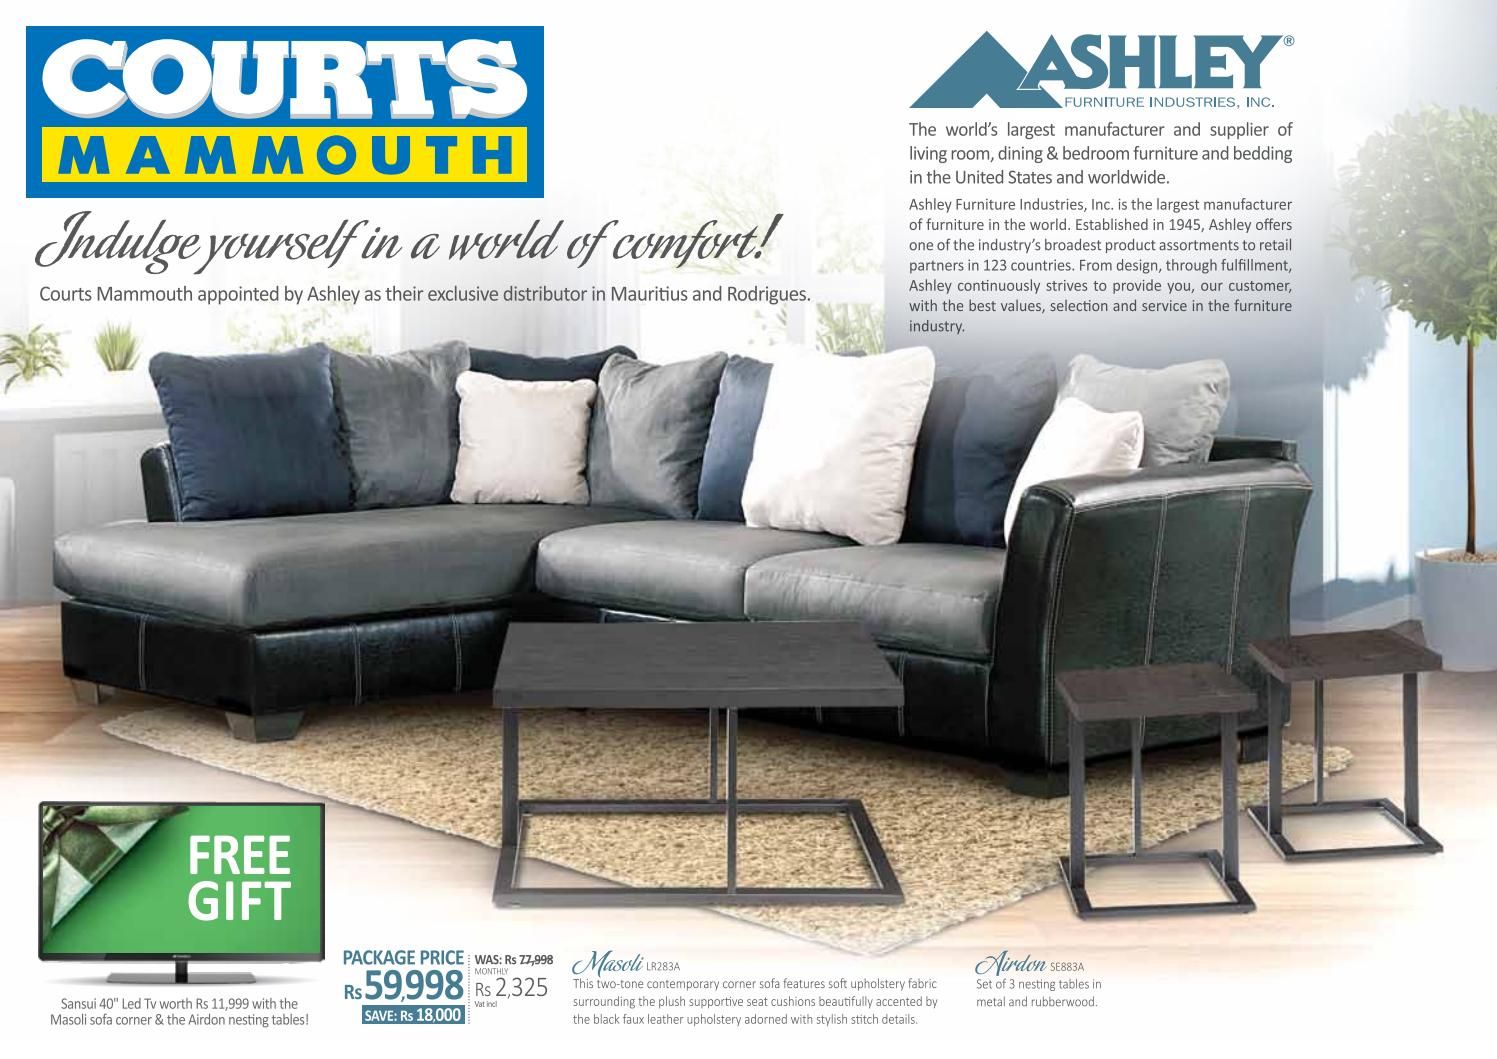 Courts mammouth mauritius ashely furniture new for Furniture house catalogue